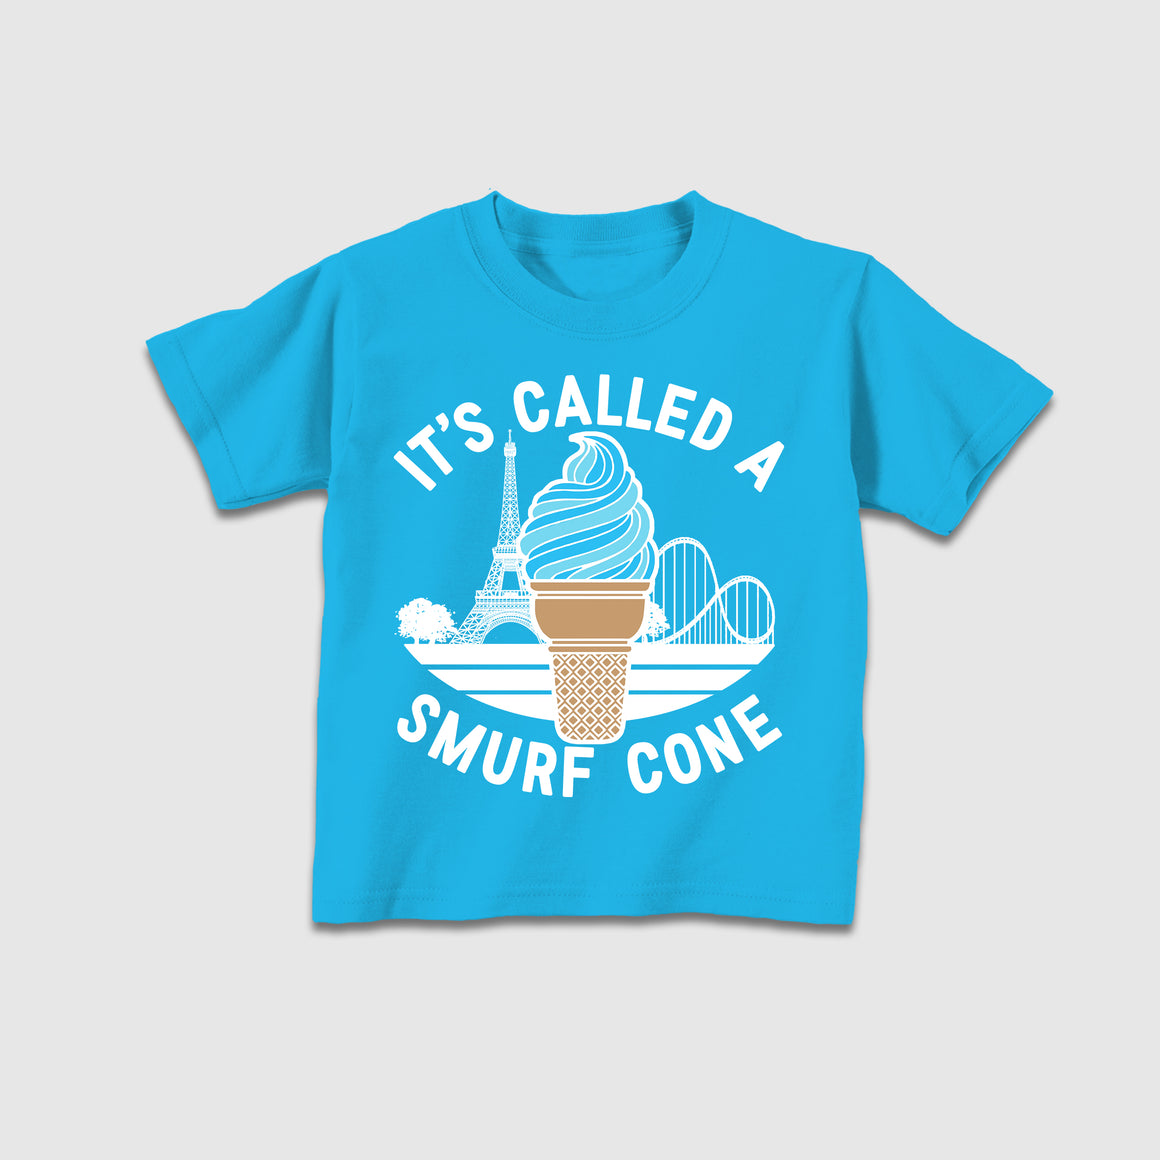 Smurf Cone - Neon Blue Youth Tee - Cincy Shirts